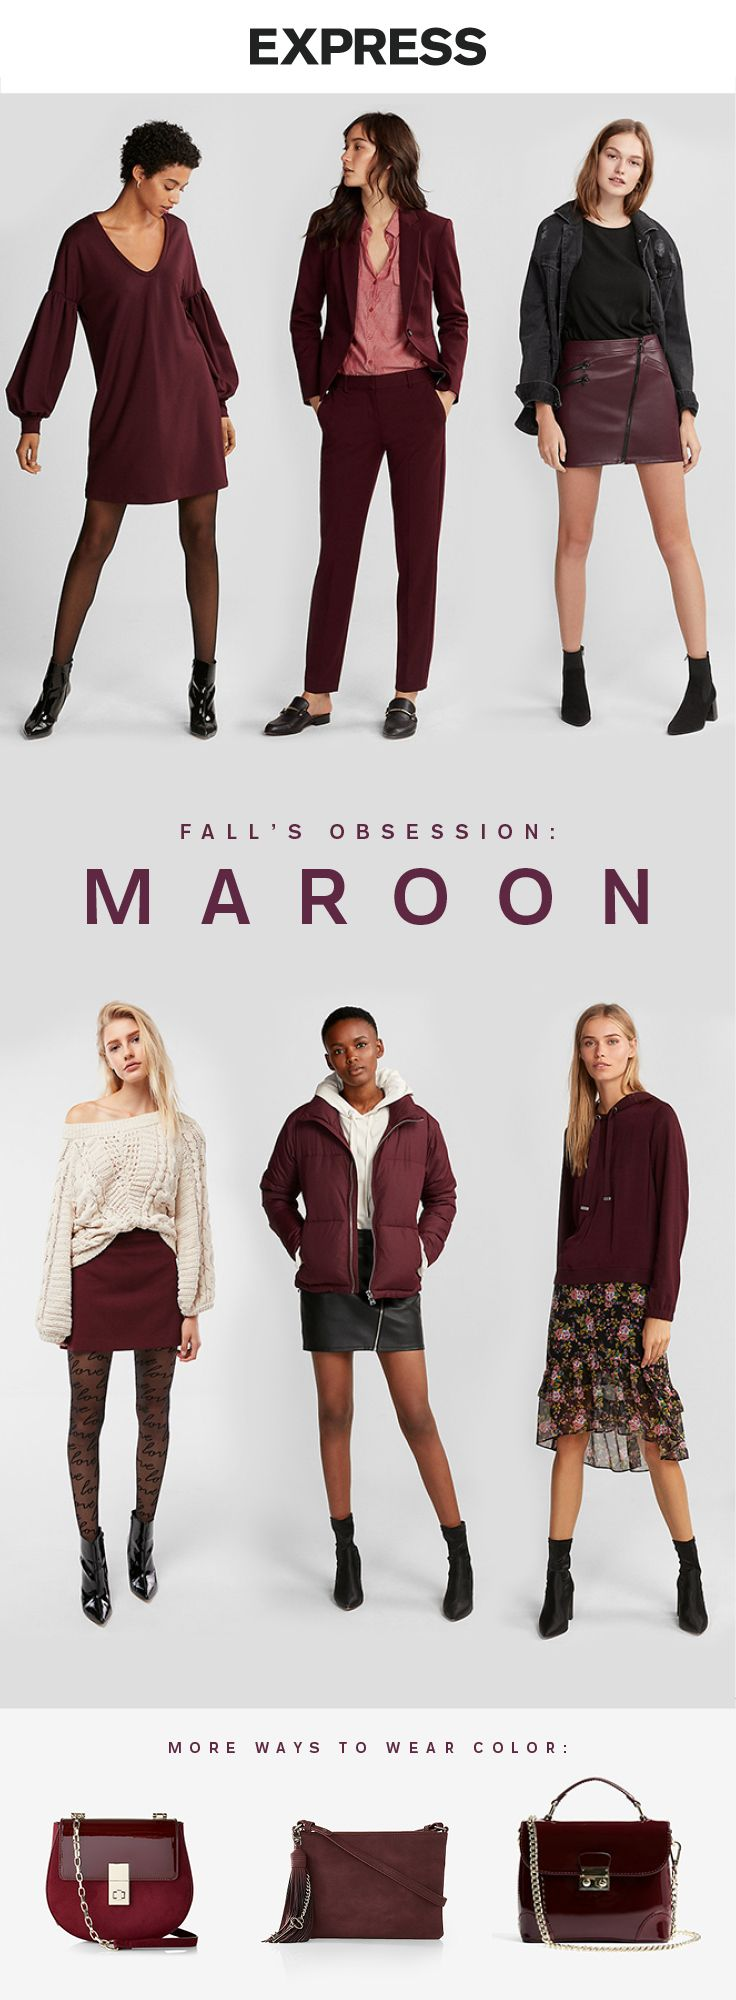 Turn heads in rich maroon tones this fall. Find maroon skirts, sweaters and jackets at Express.